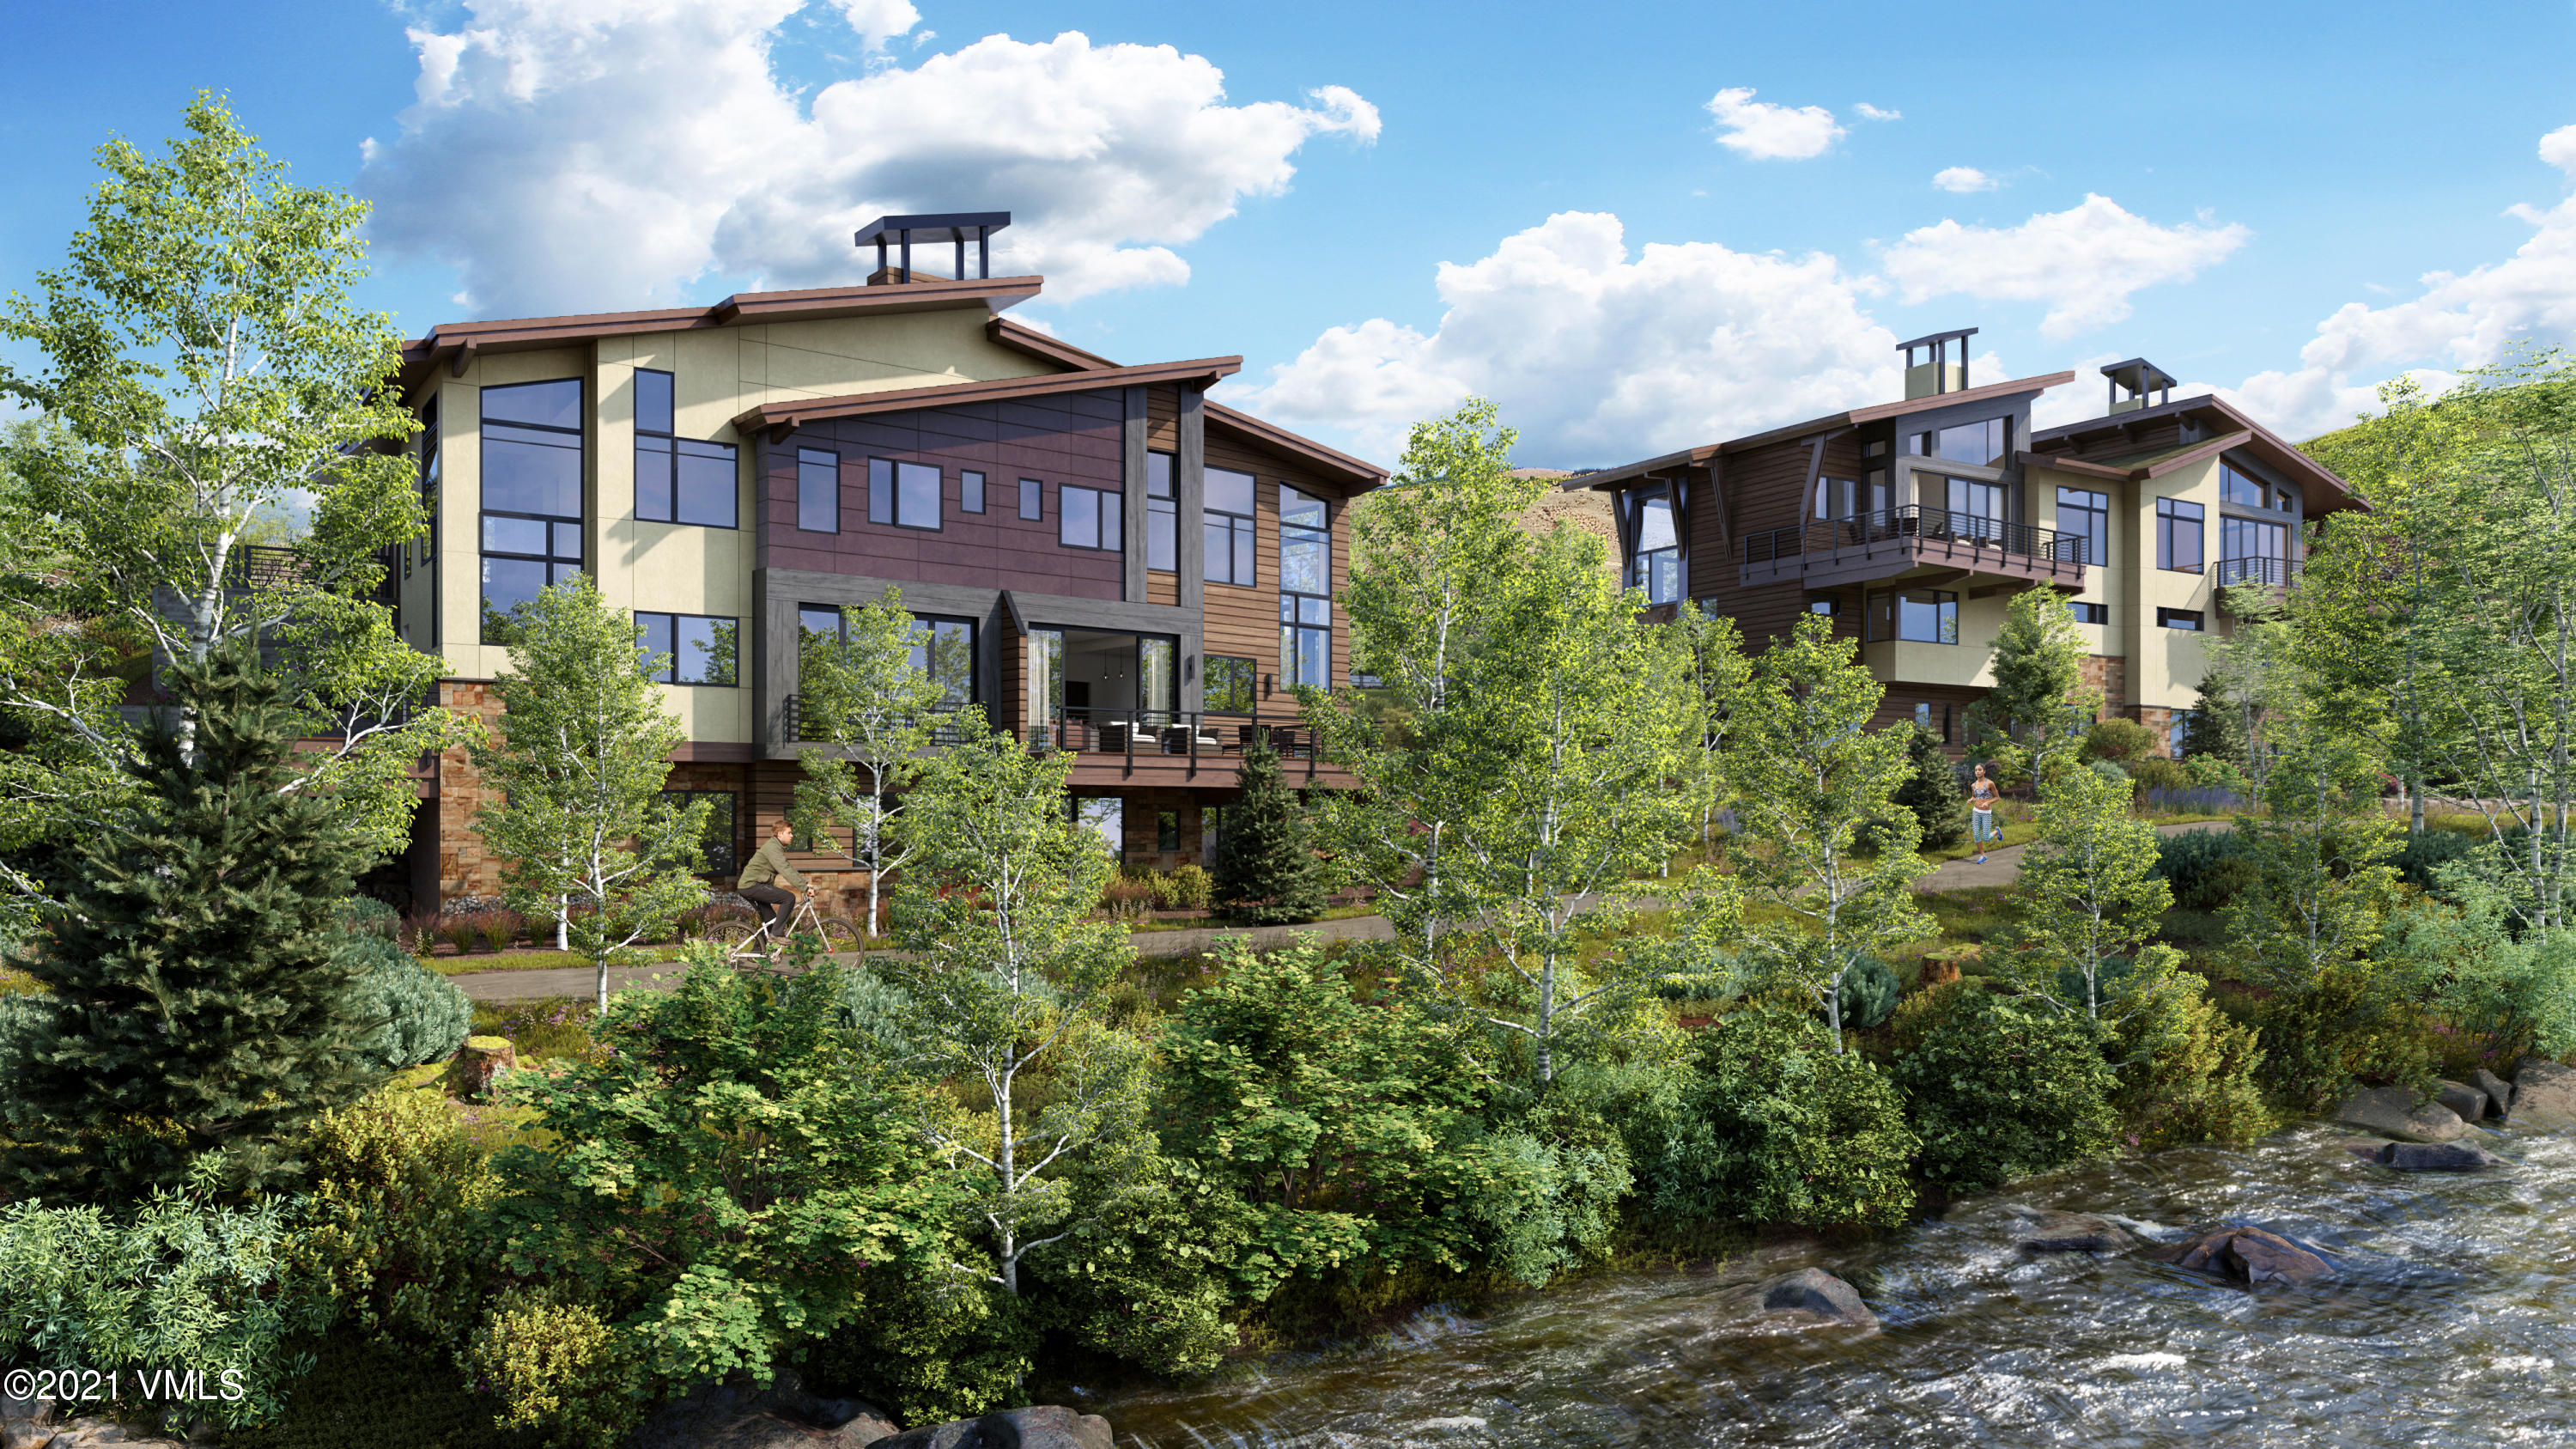 Luxurious 4-bedroom, 3-bathroom residences in an unparalleled location perched on the Eagle River in the brand-new Riverfront Village. Enjoy an ultimate indoor-to-outdoor experience in these very open-concept plans featuring 9-foot glass walls that fold onto an expansive decks, allowing for panoramic views down the River and up to mountain peaks. Designed for the future of luxury mountain living, the floor plans offer a second living room, optional office, solar panels, a cutting-edge air filtration system, along with lockable owner storage and a coveted 2-car garage. Enjoy dual perks of unbelievable access to world class amenities at the Westin while still being able to retreat to the privacy and seclusion of your own quiet enclave of only 4 residences. Interiors are sleek and sophisticated featuring oak slab cabinets, wide-plank hardwood floors, quartz countertops, Waterworks fixtures, Thermador appliances and natural textures and contrasts. Be one of only four lucky owners to own a masterpiece at the end of Riverfront Lane.